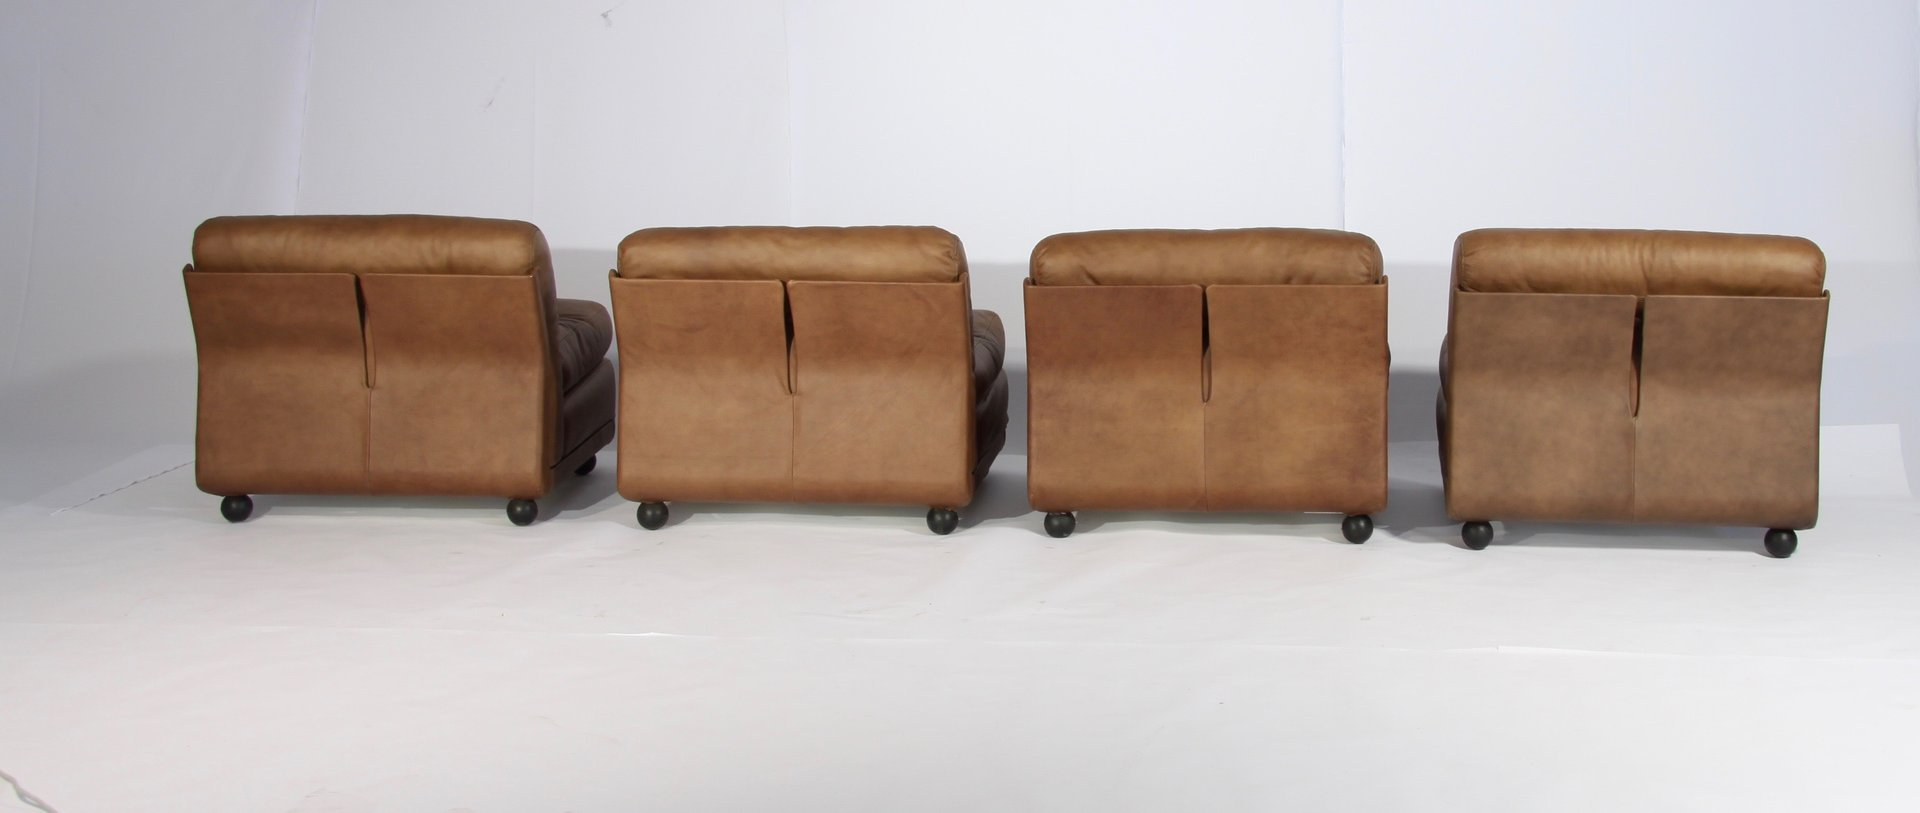 Vintage Model Amanta Leather Lounge Chairs By Mario